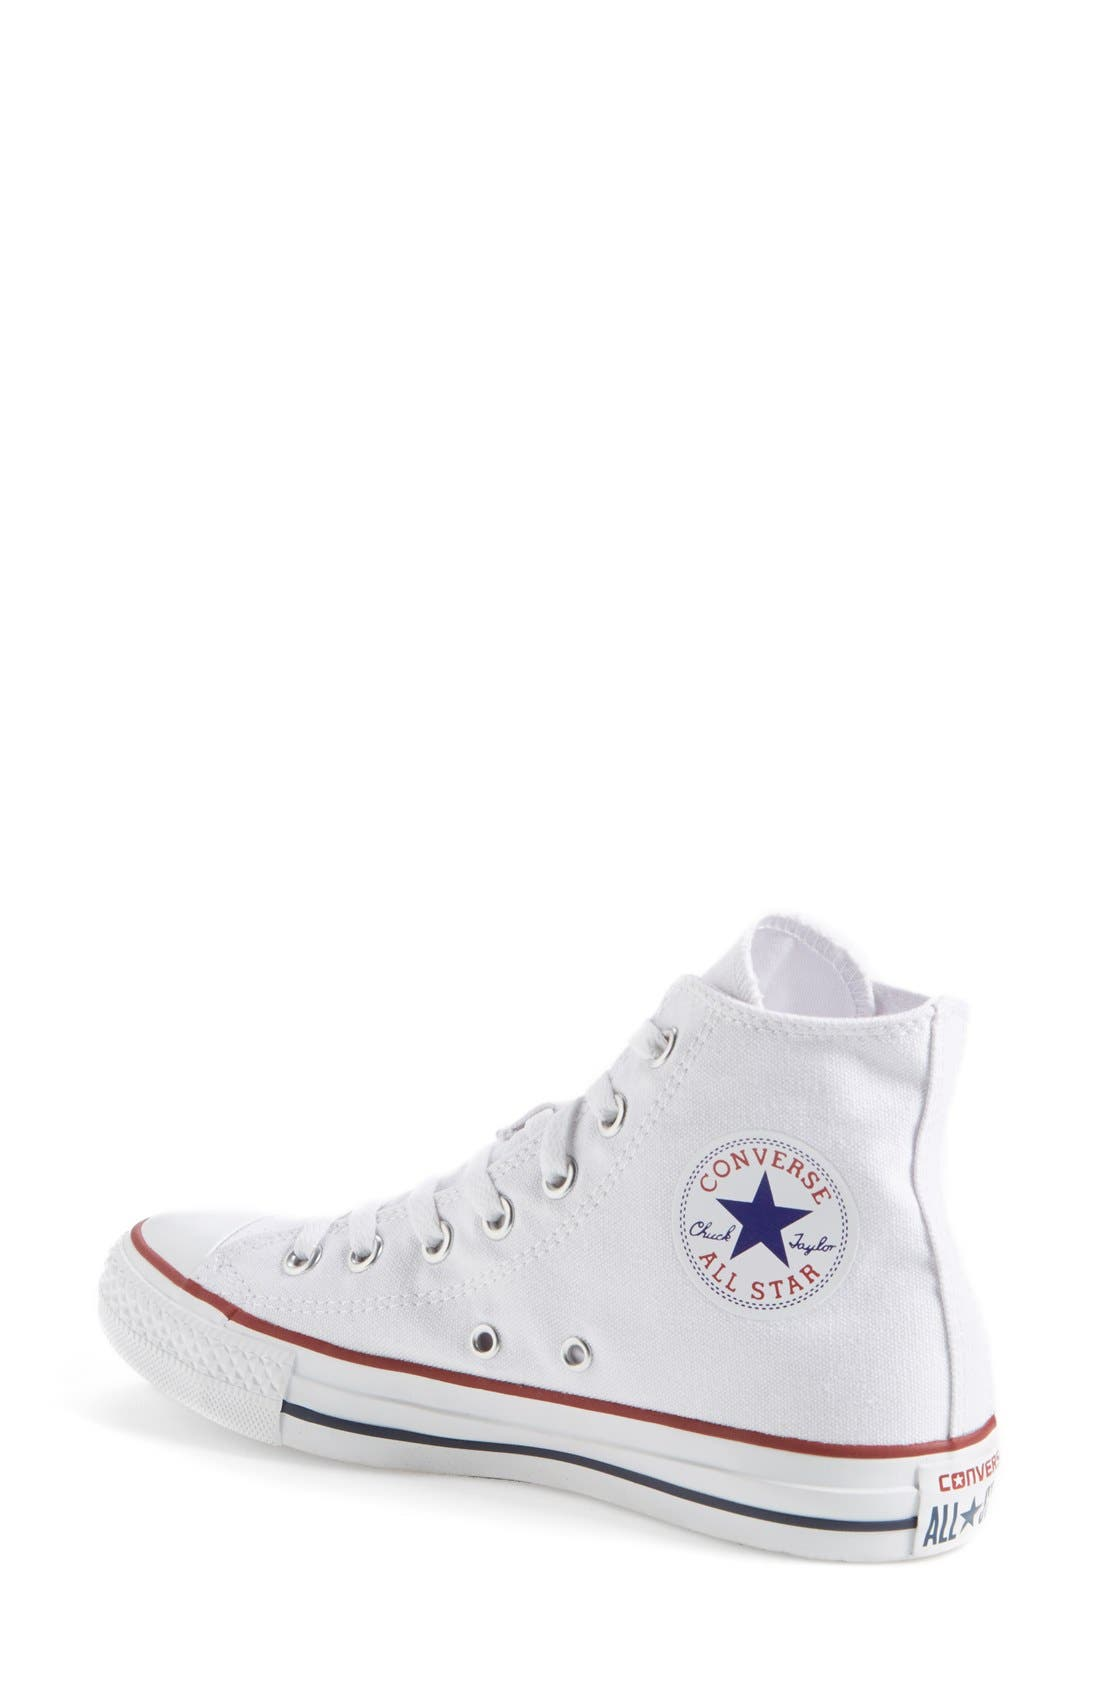 Chuck Taylor<sup>®</sup> High Top Sneaker,                             Alternate thumbnail 7, color,                             OPTIC WHITE